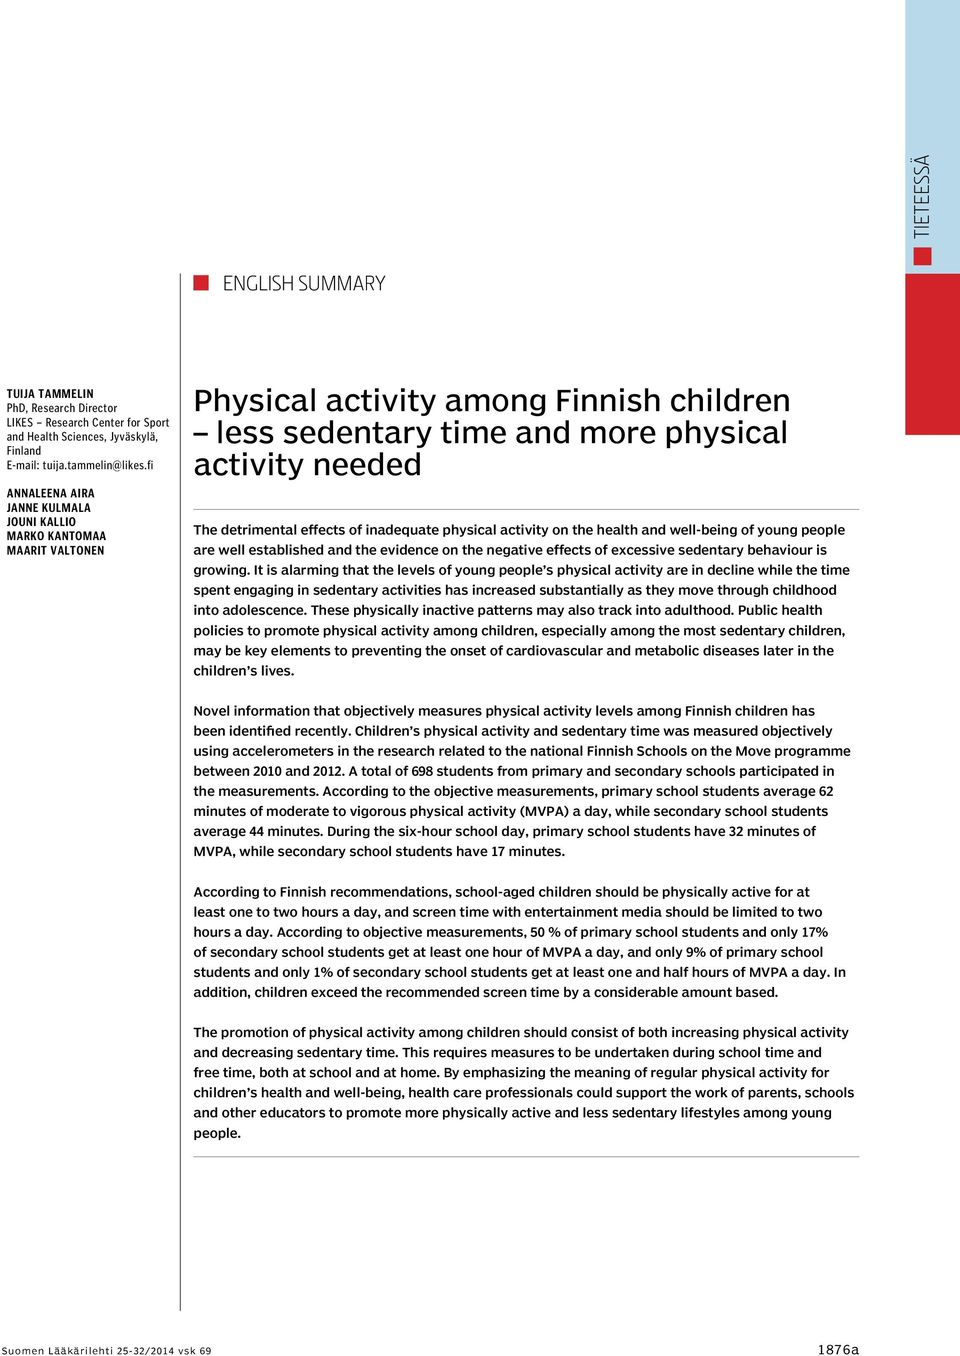 inadequate physical activity on the health and well-being of young people are well established and the evidence on the negative effects of excessive sedentary behaviour is growing.